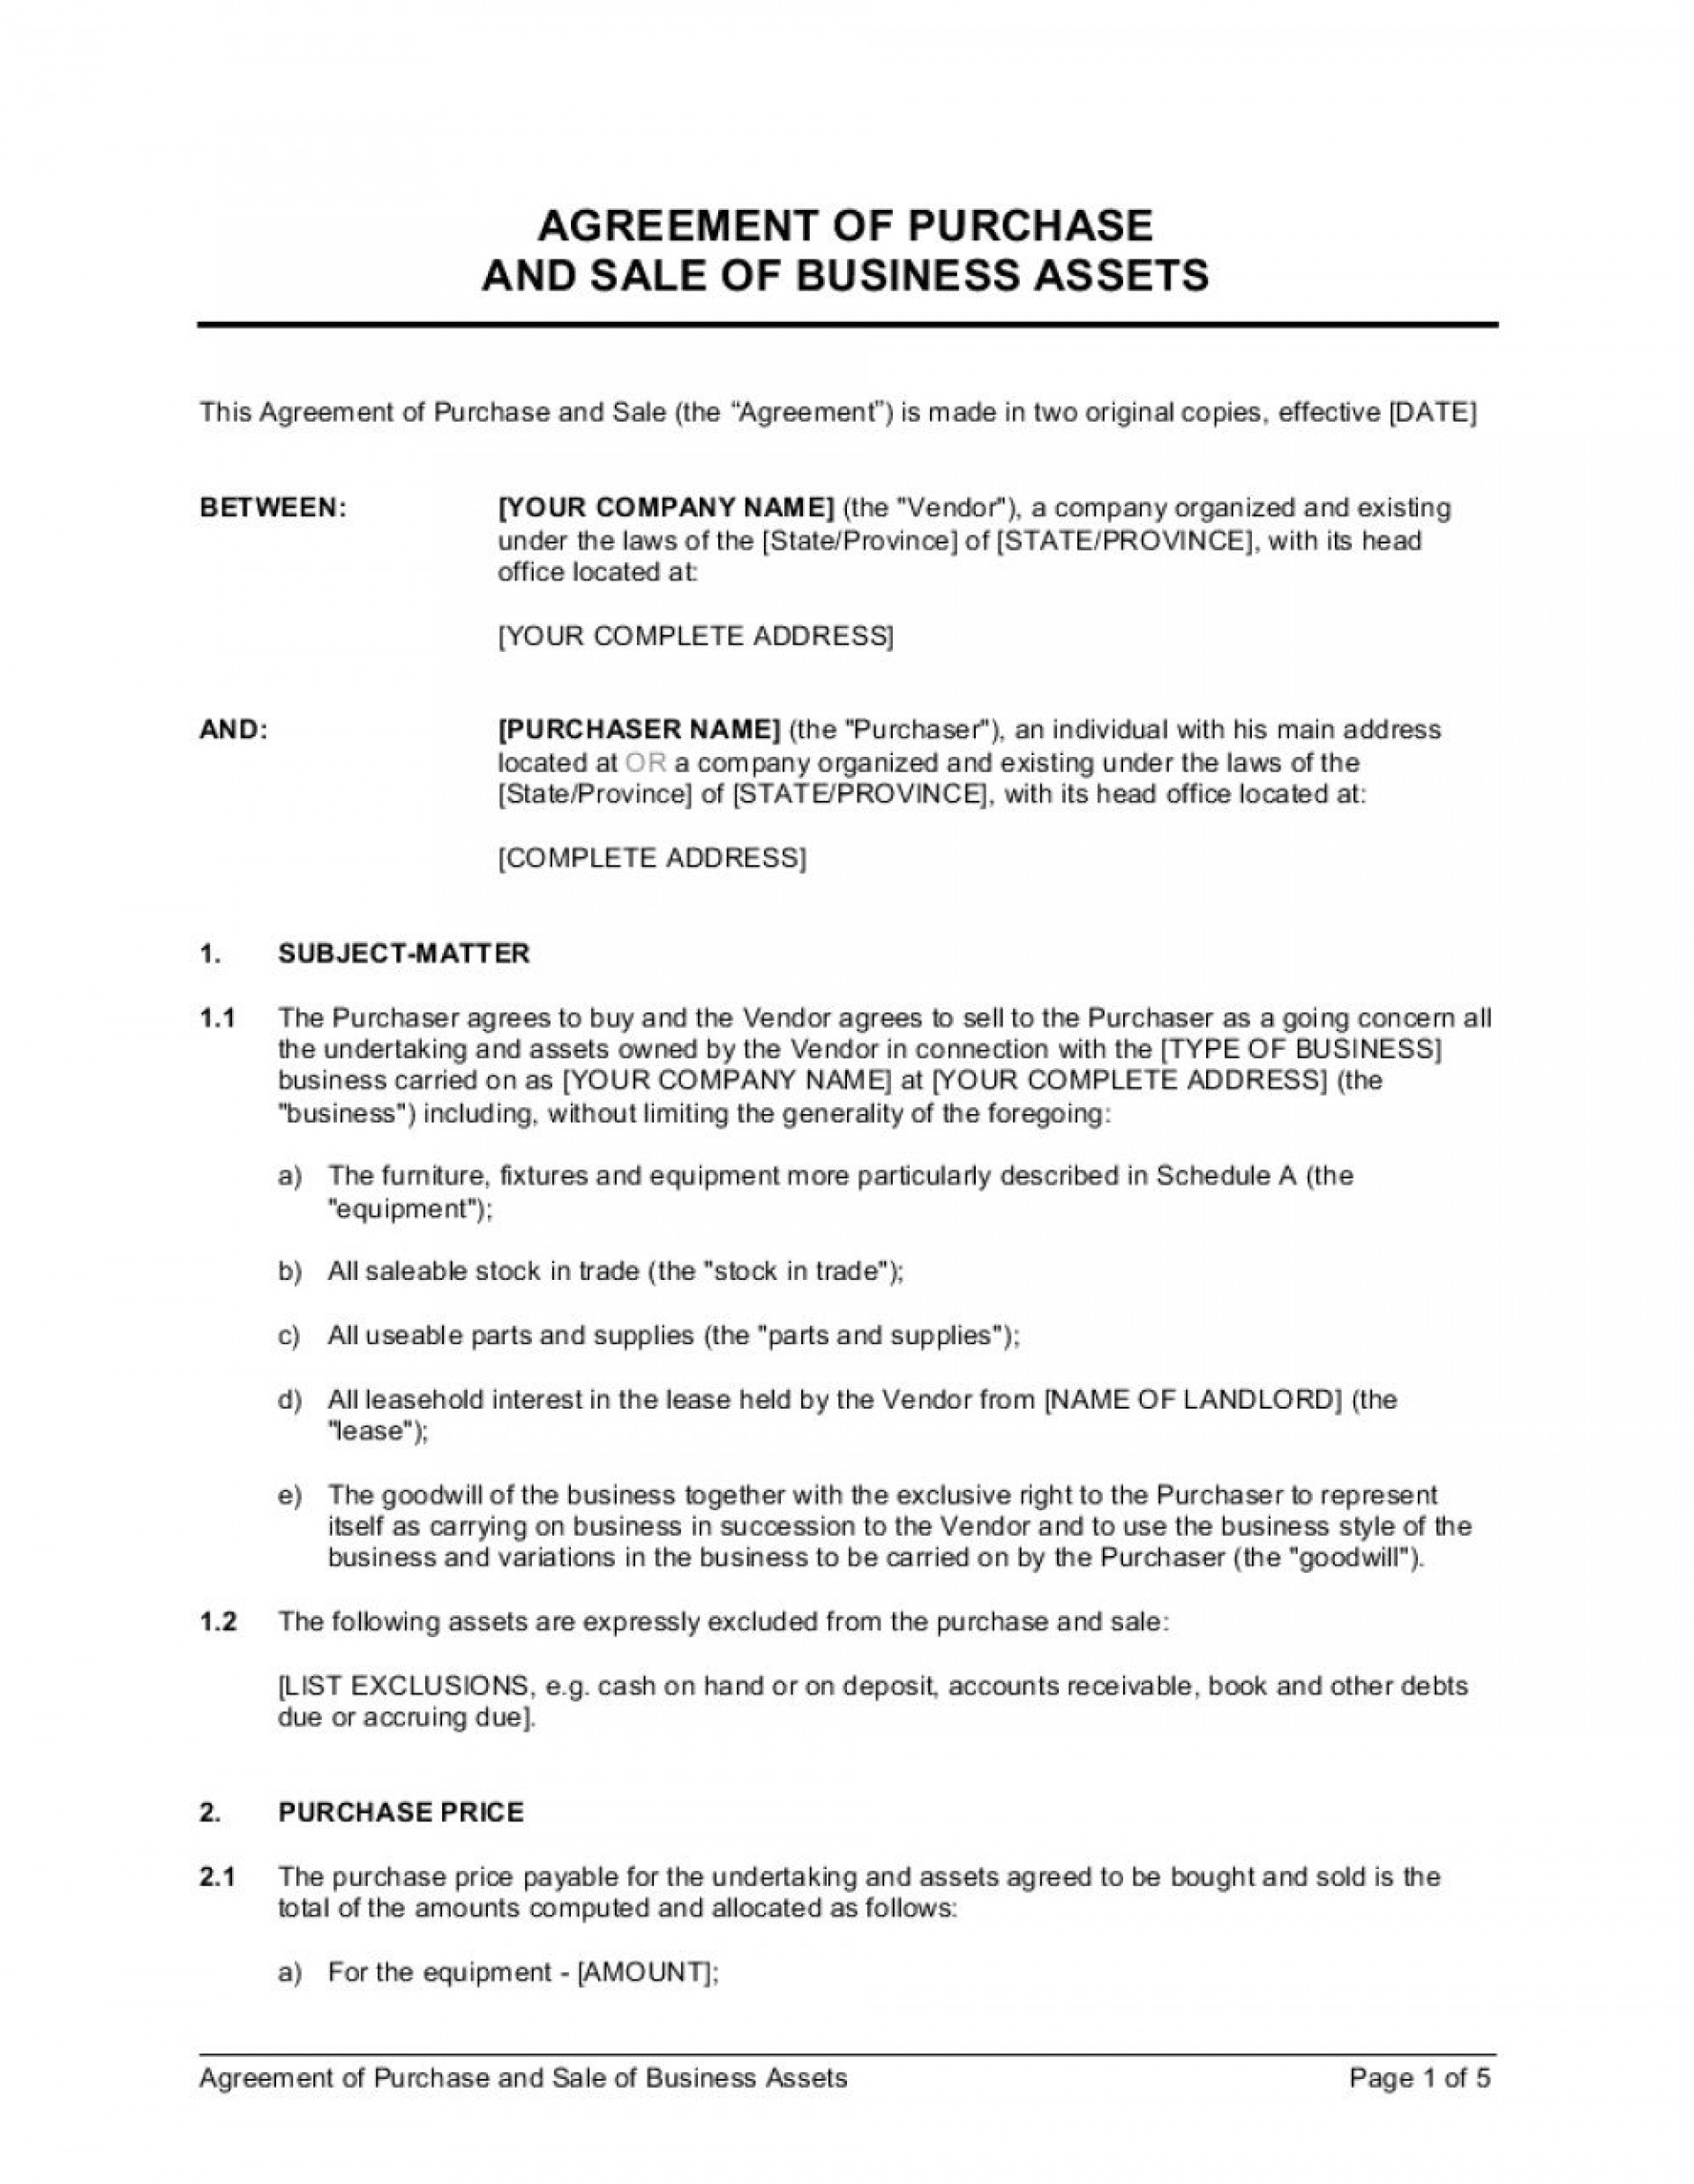 001 Fearsome Busines Purchase Agreement Template Design  Free Uk Sale And Nz Buying Contract1920